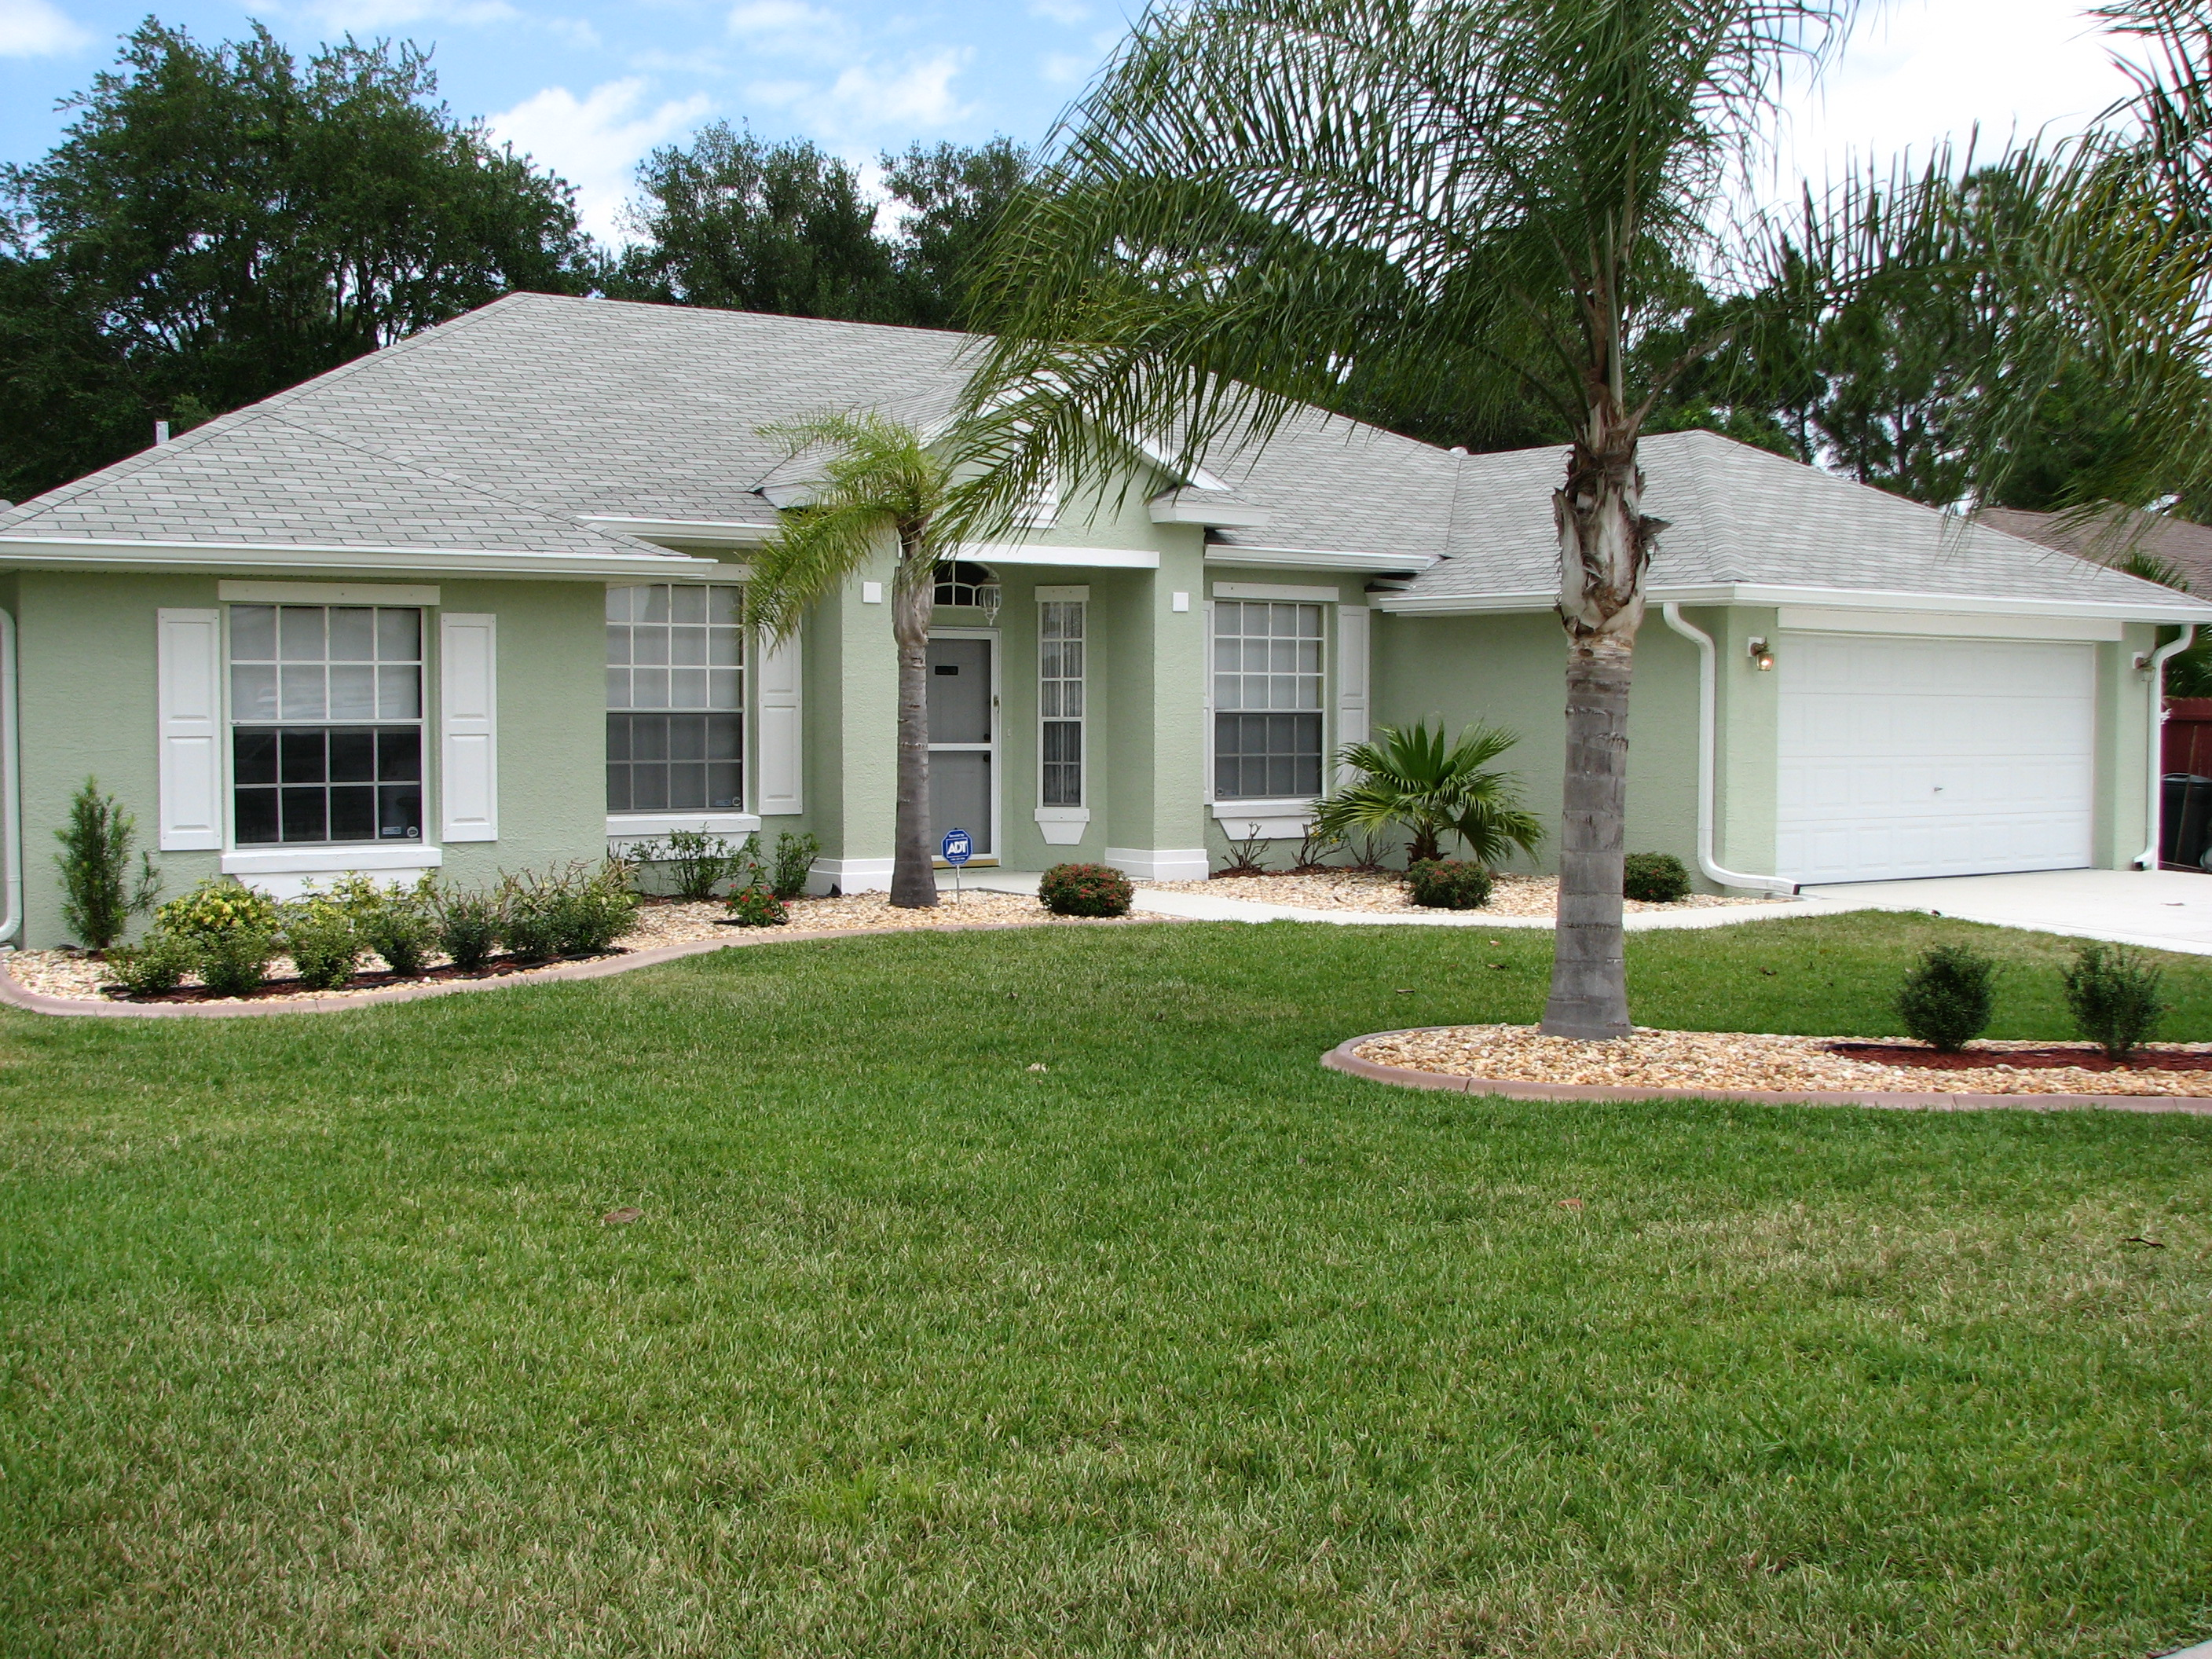 Cocoa fl exterior house painting project by peck painting for House painting images